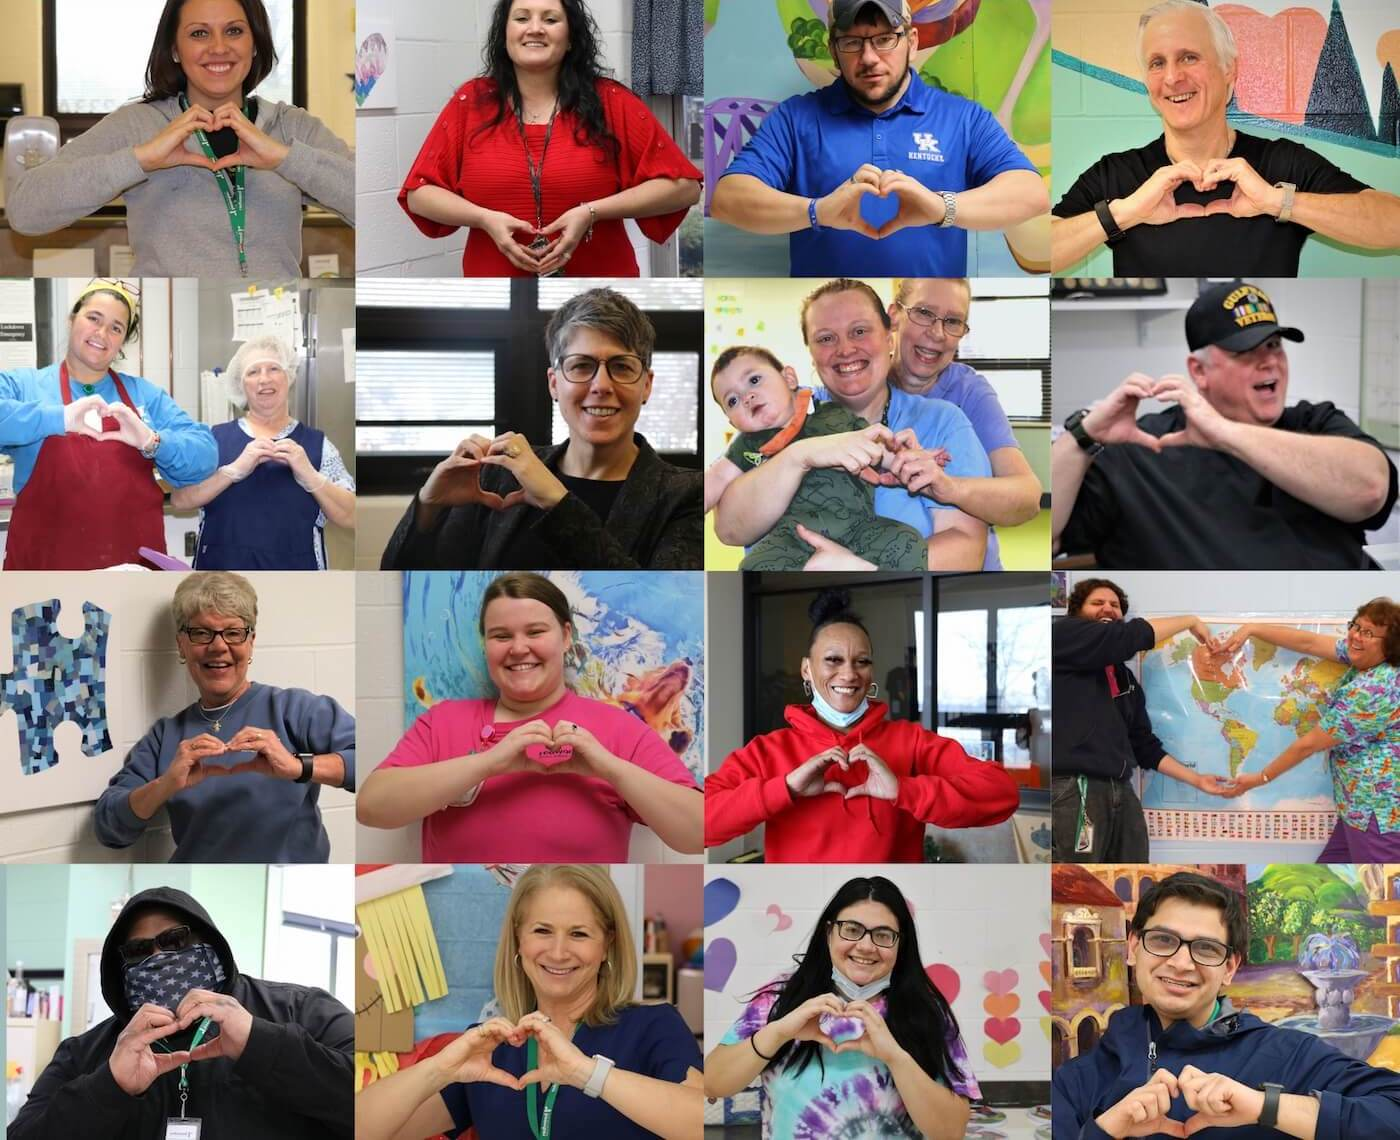 Collage of Redwood staff forming hearts with their hands.